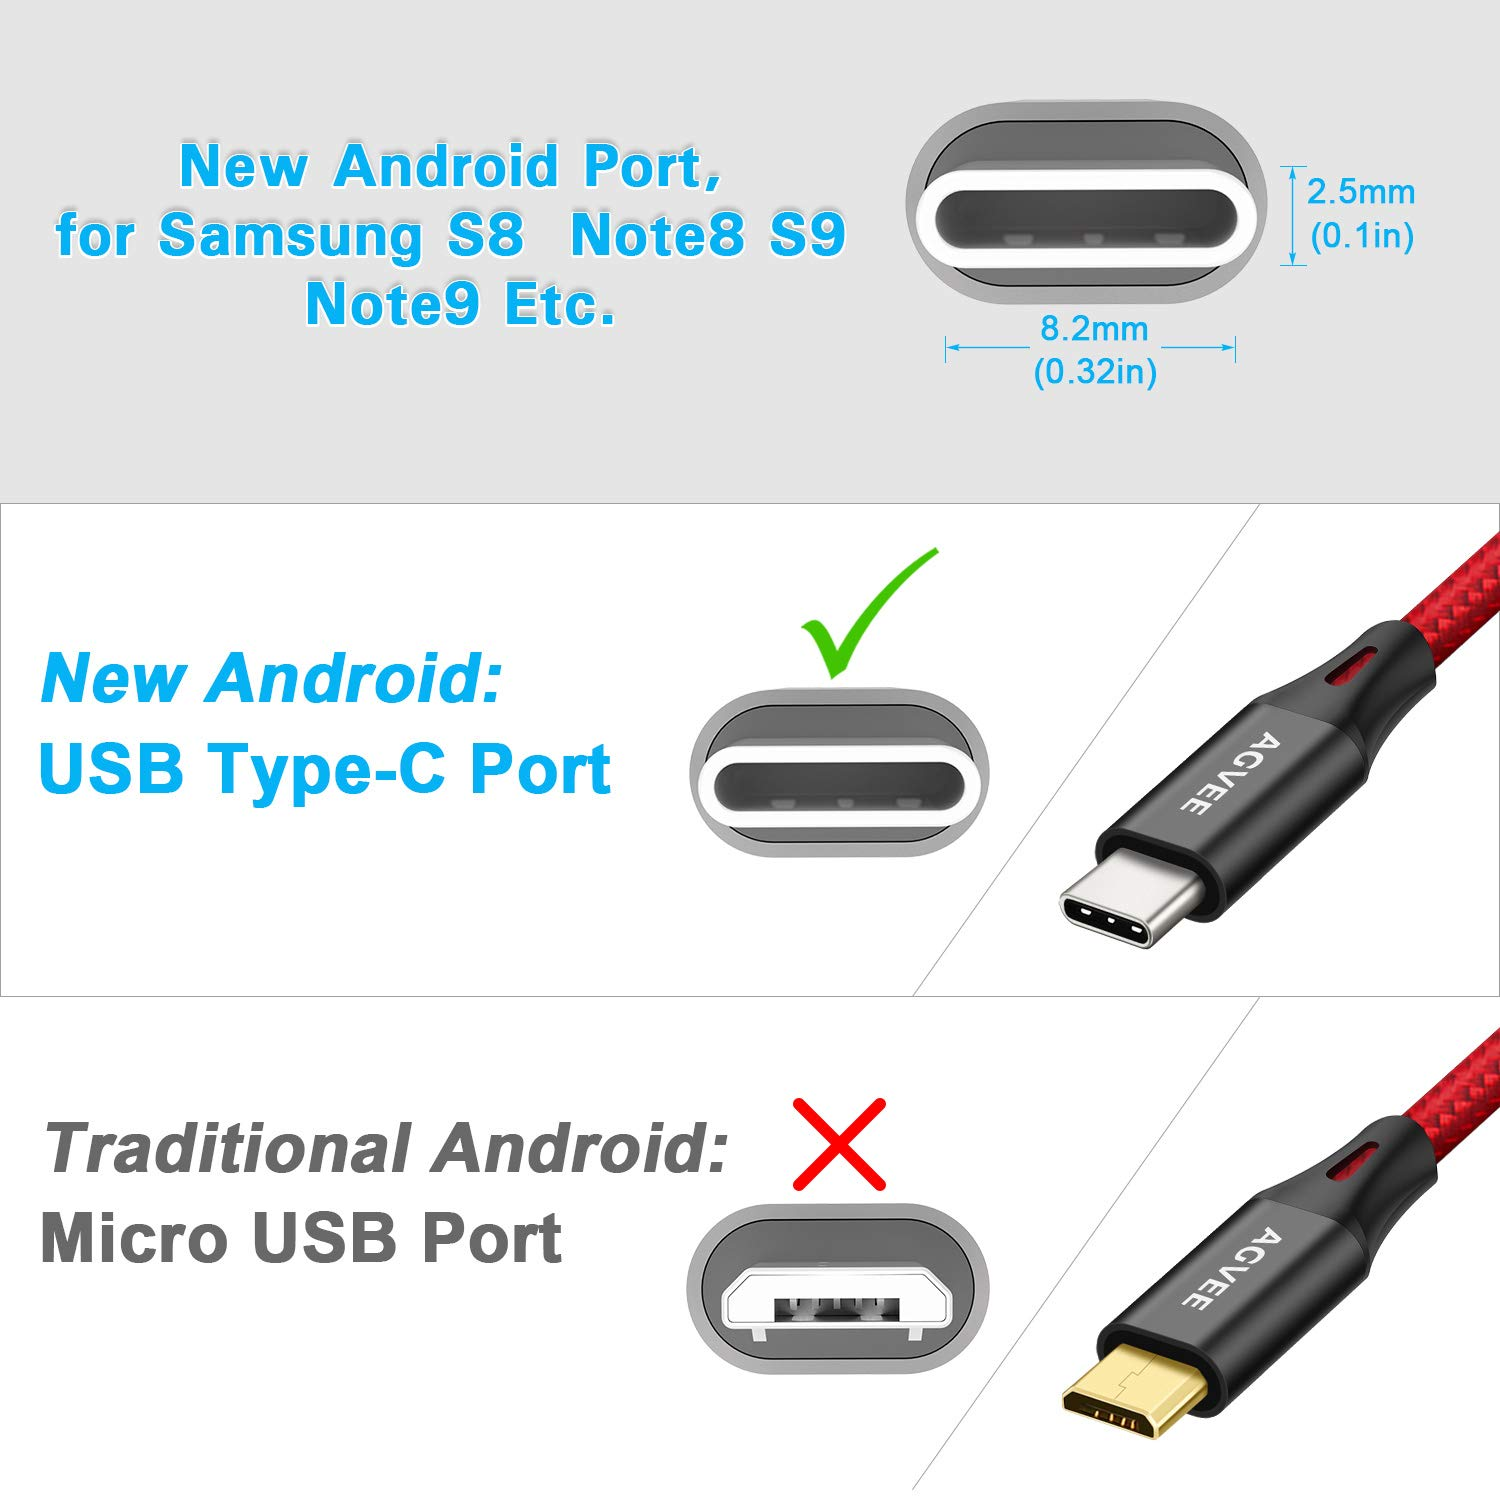 Agvee 3A Heavy Duty USB-C Charger Cable [3 Pack 6.8ft] Seamless USBC Tip, Braided Type-C Charger New Android Phone Cord for Samsung Galaxy (2017 2018) ...